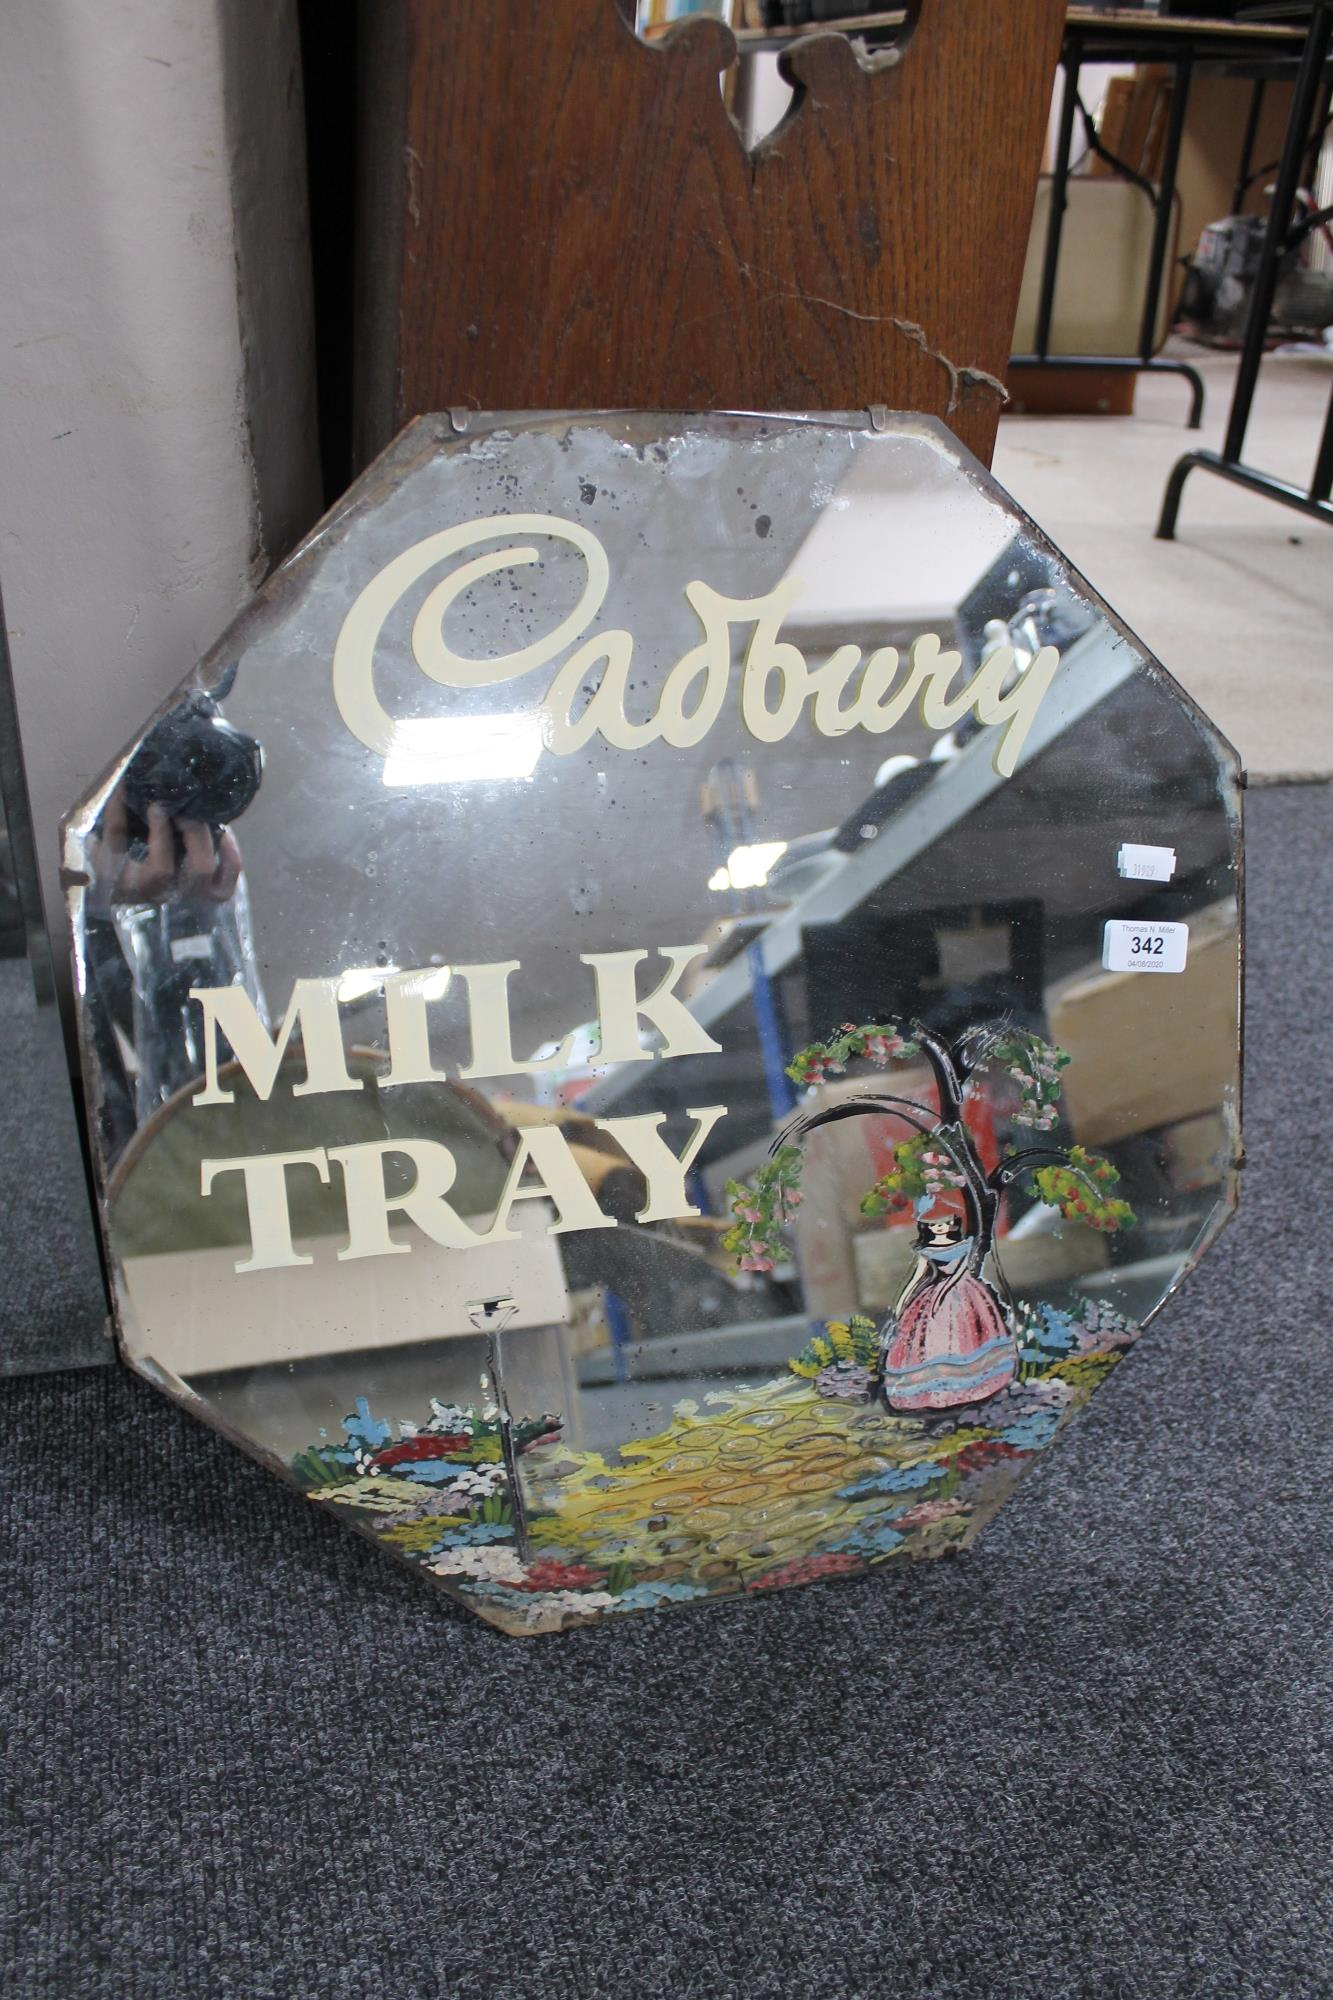 A frameless mirror with milk tray advertising